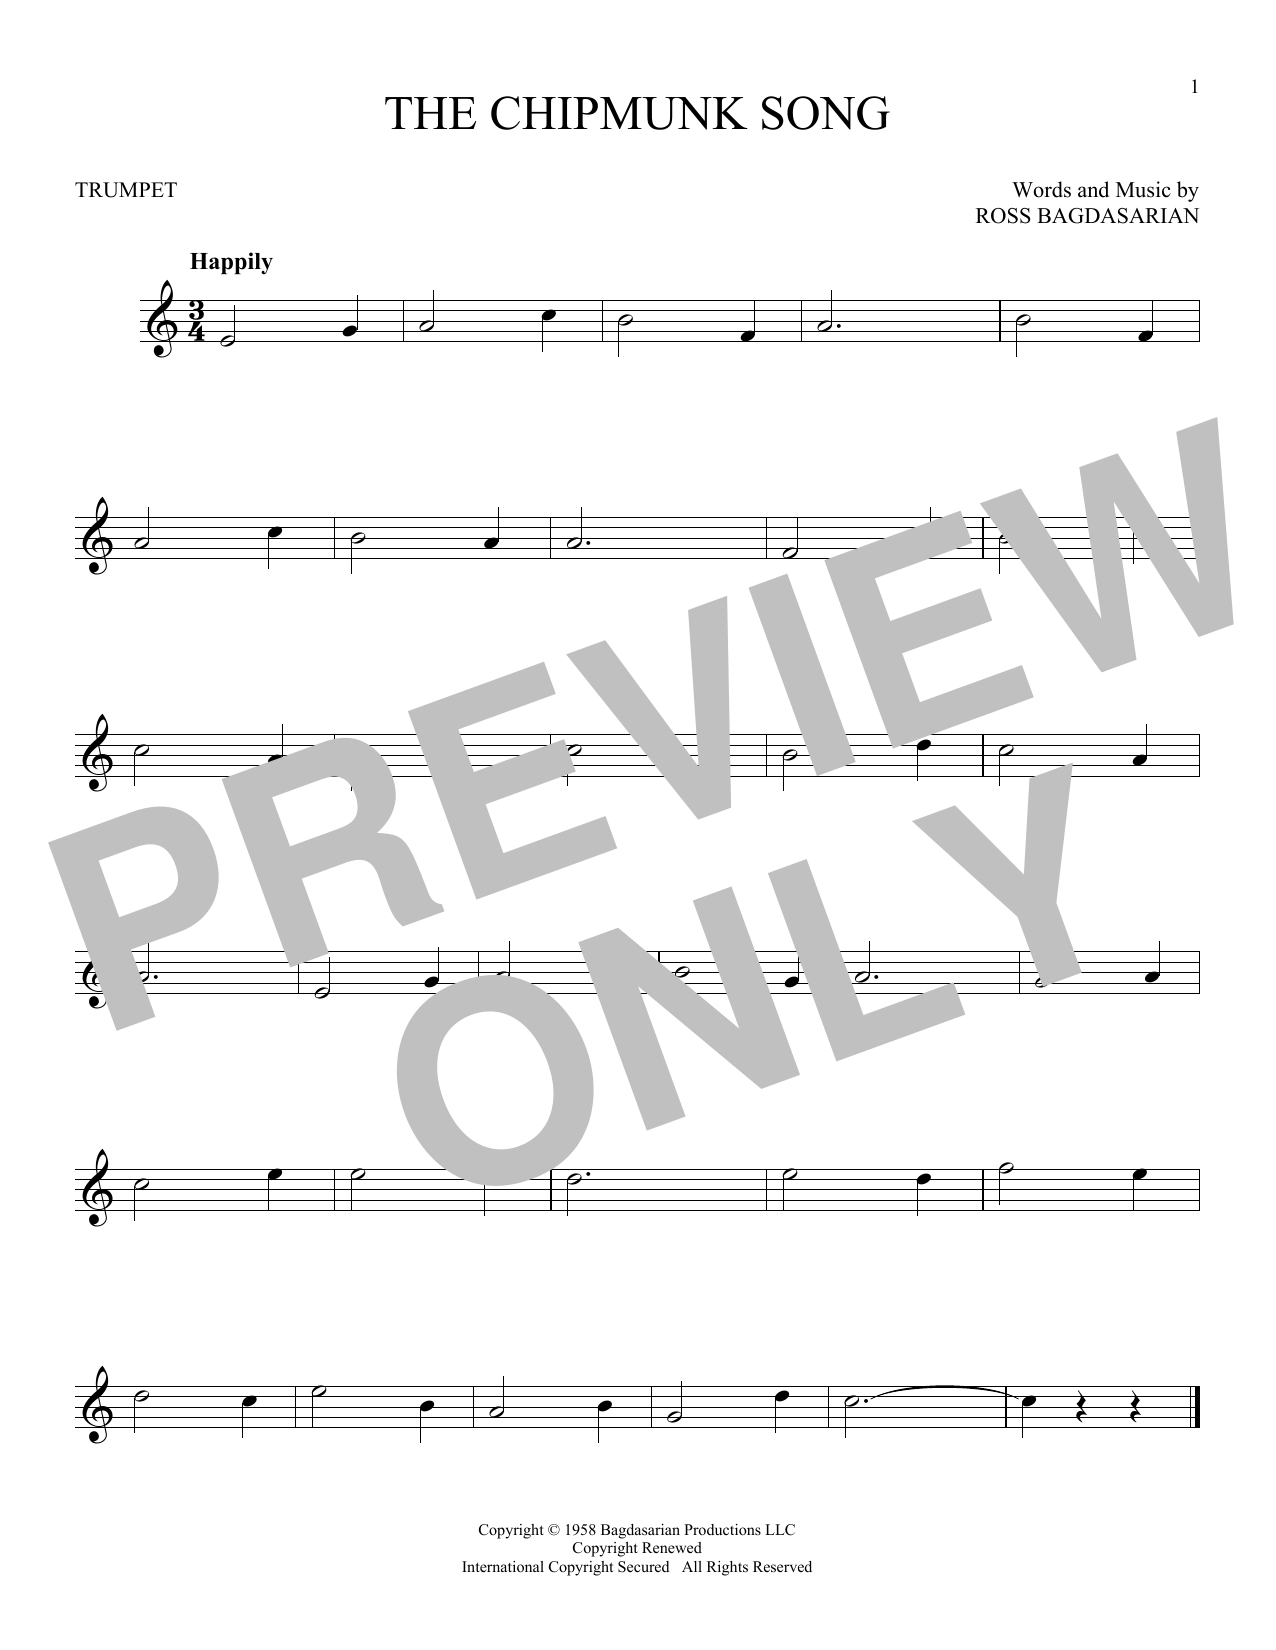 The Chipmunk Song Sheet Music